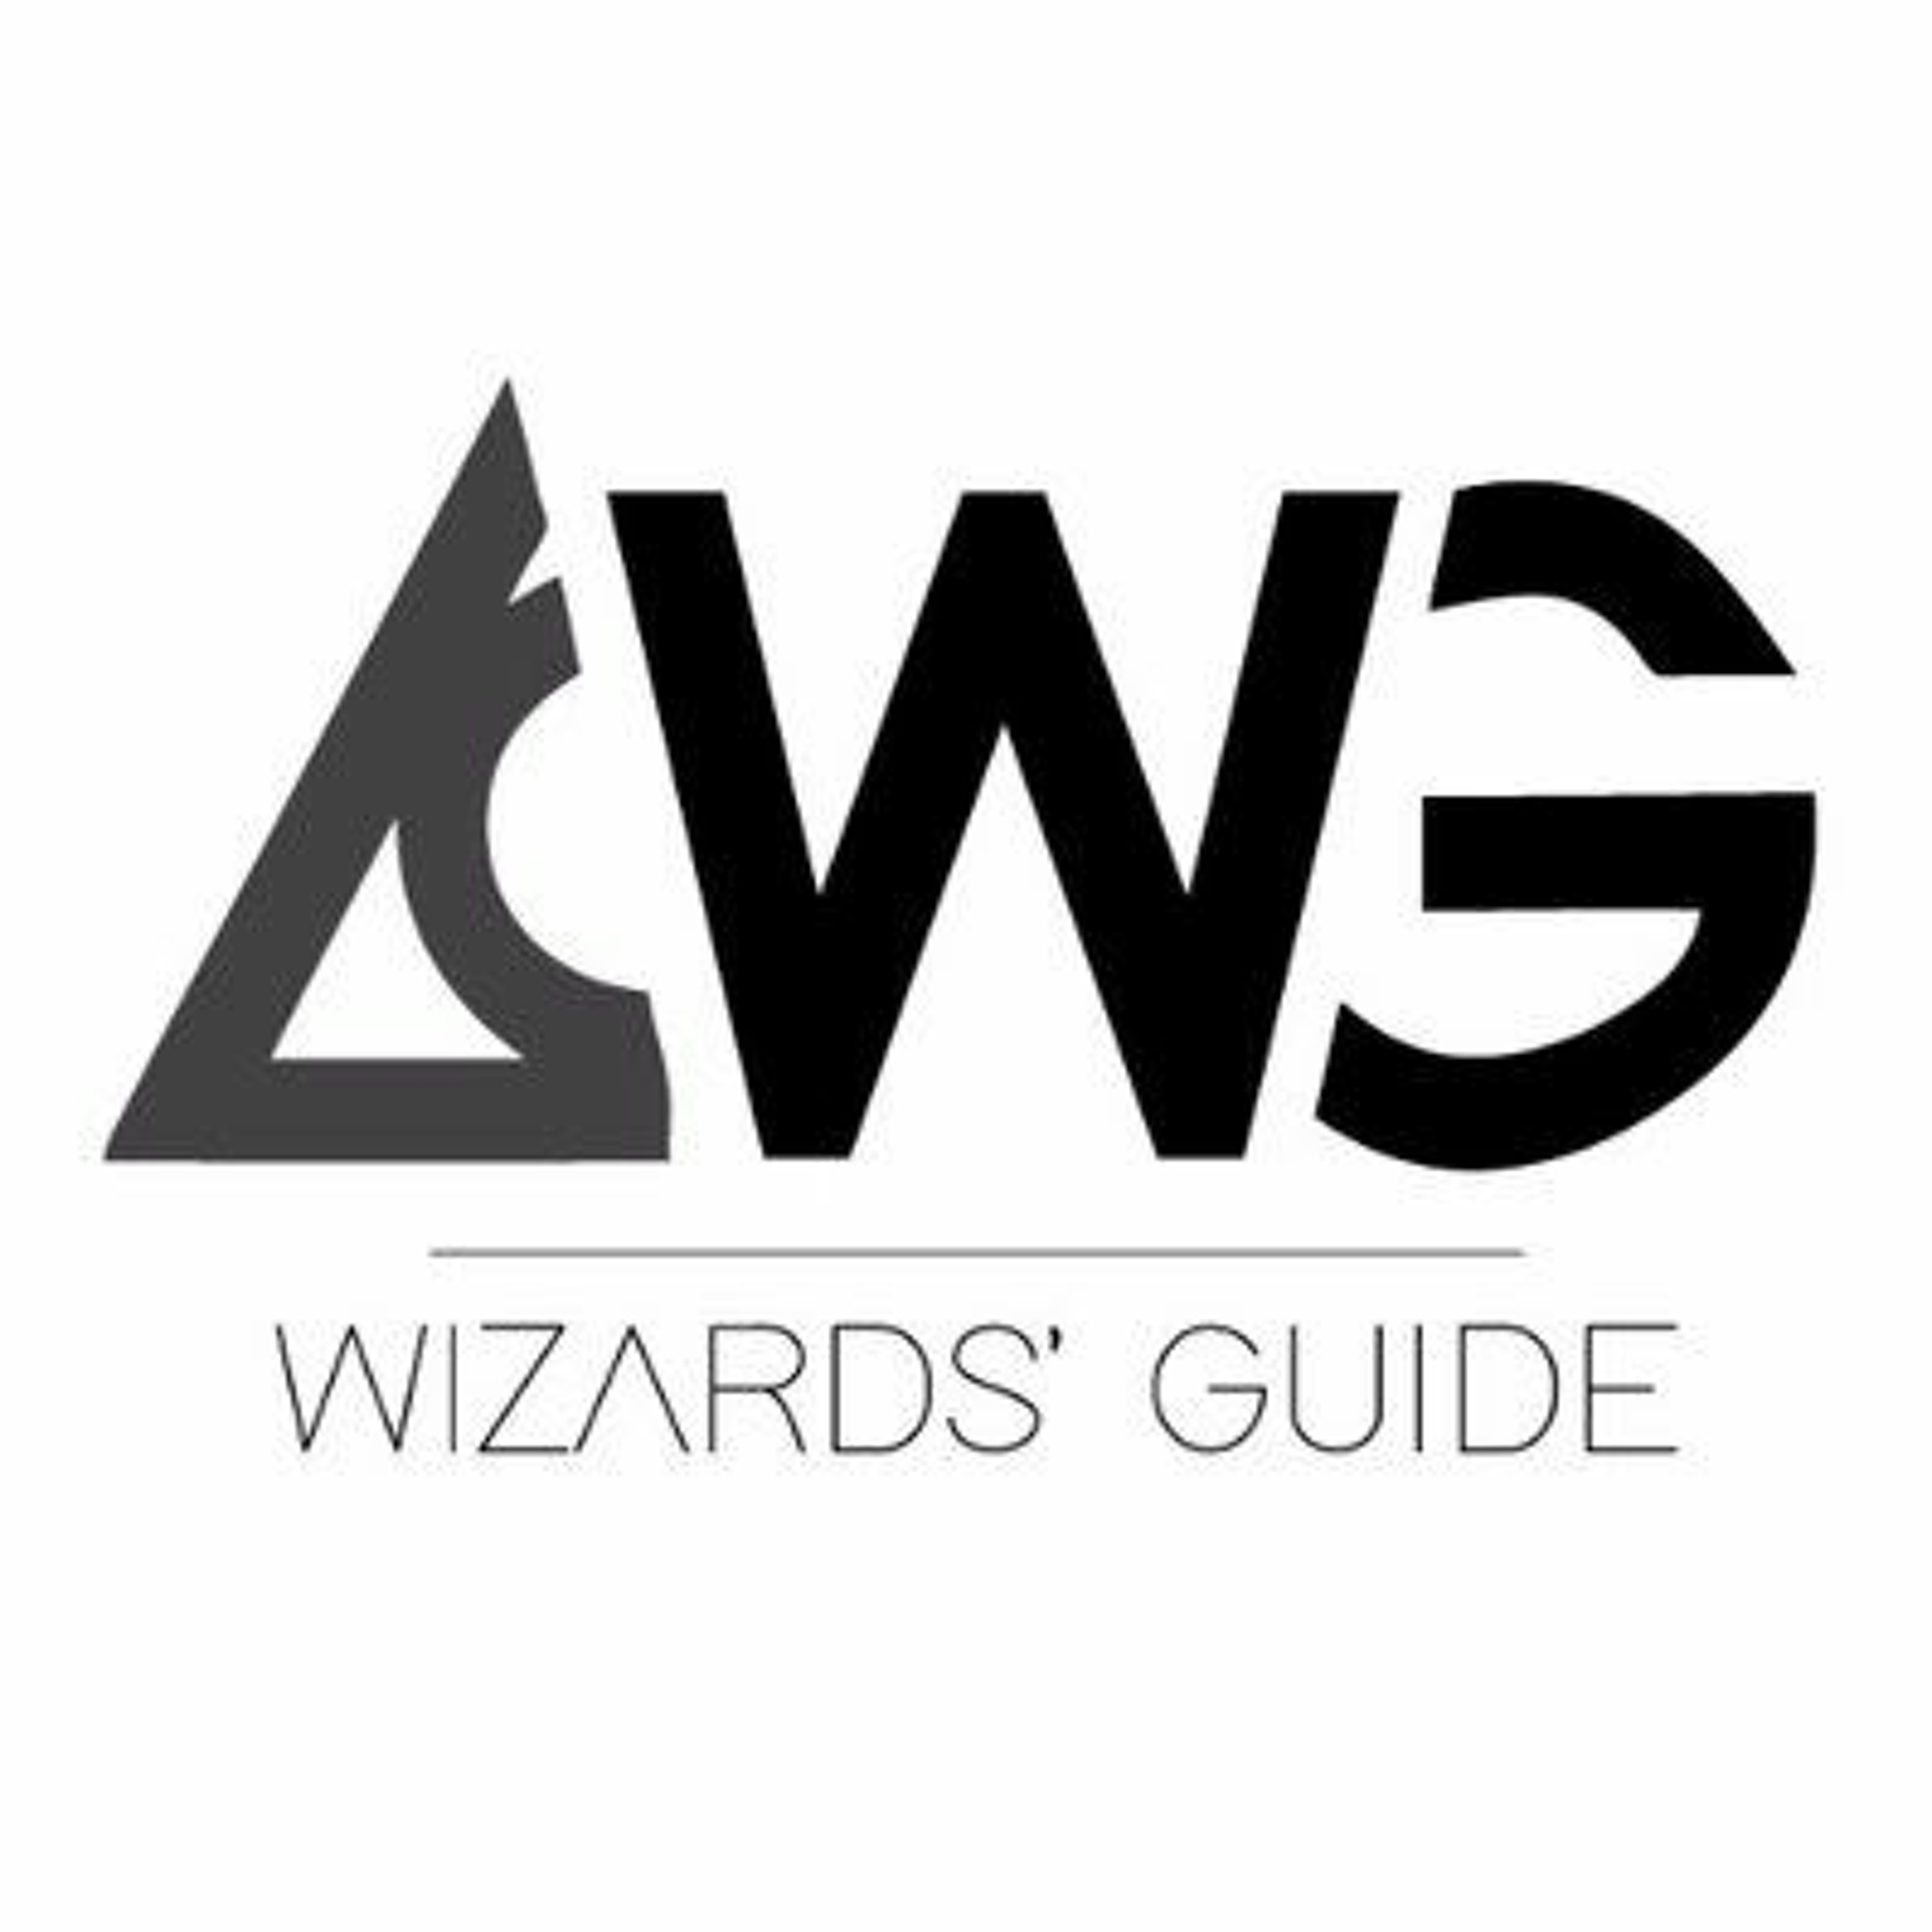 7: Wizards Unite GLOBAL CHALLENGE Details Revealed + Day of the Dragons